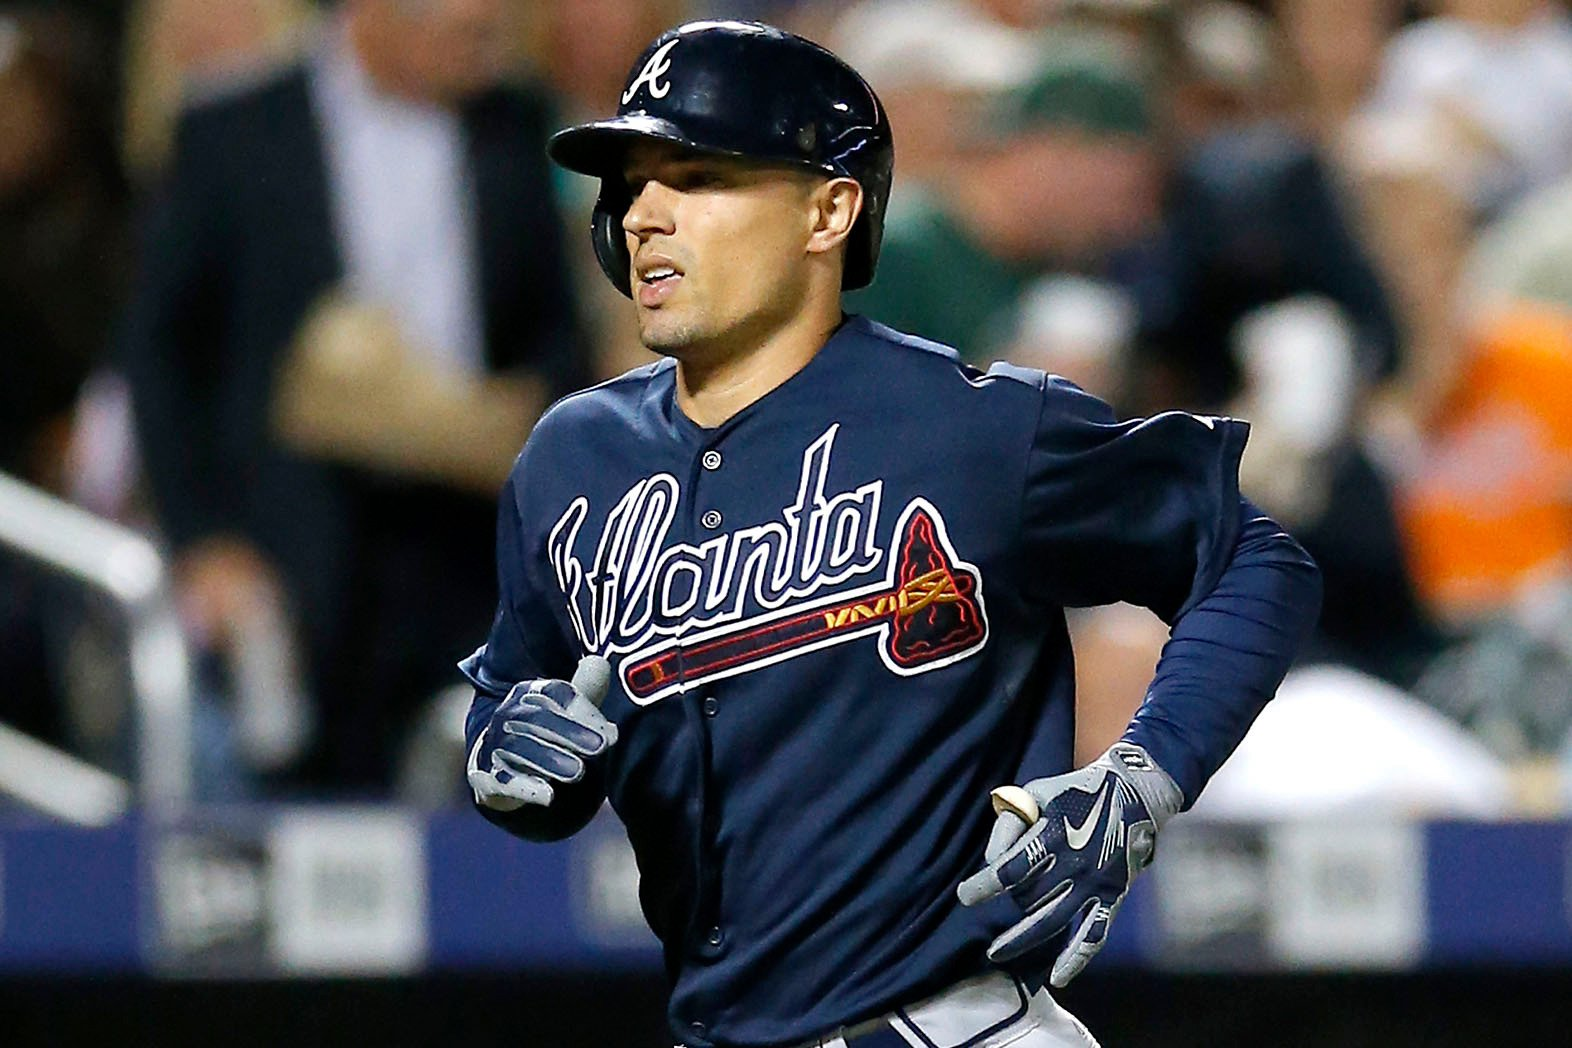 Yankees sign former Brave to add more depth into the infield